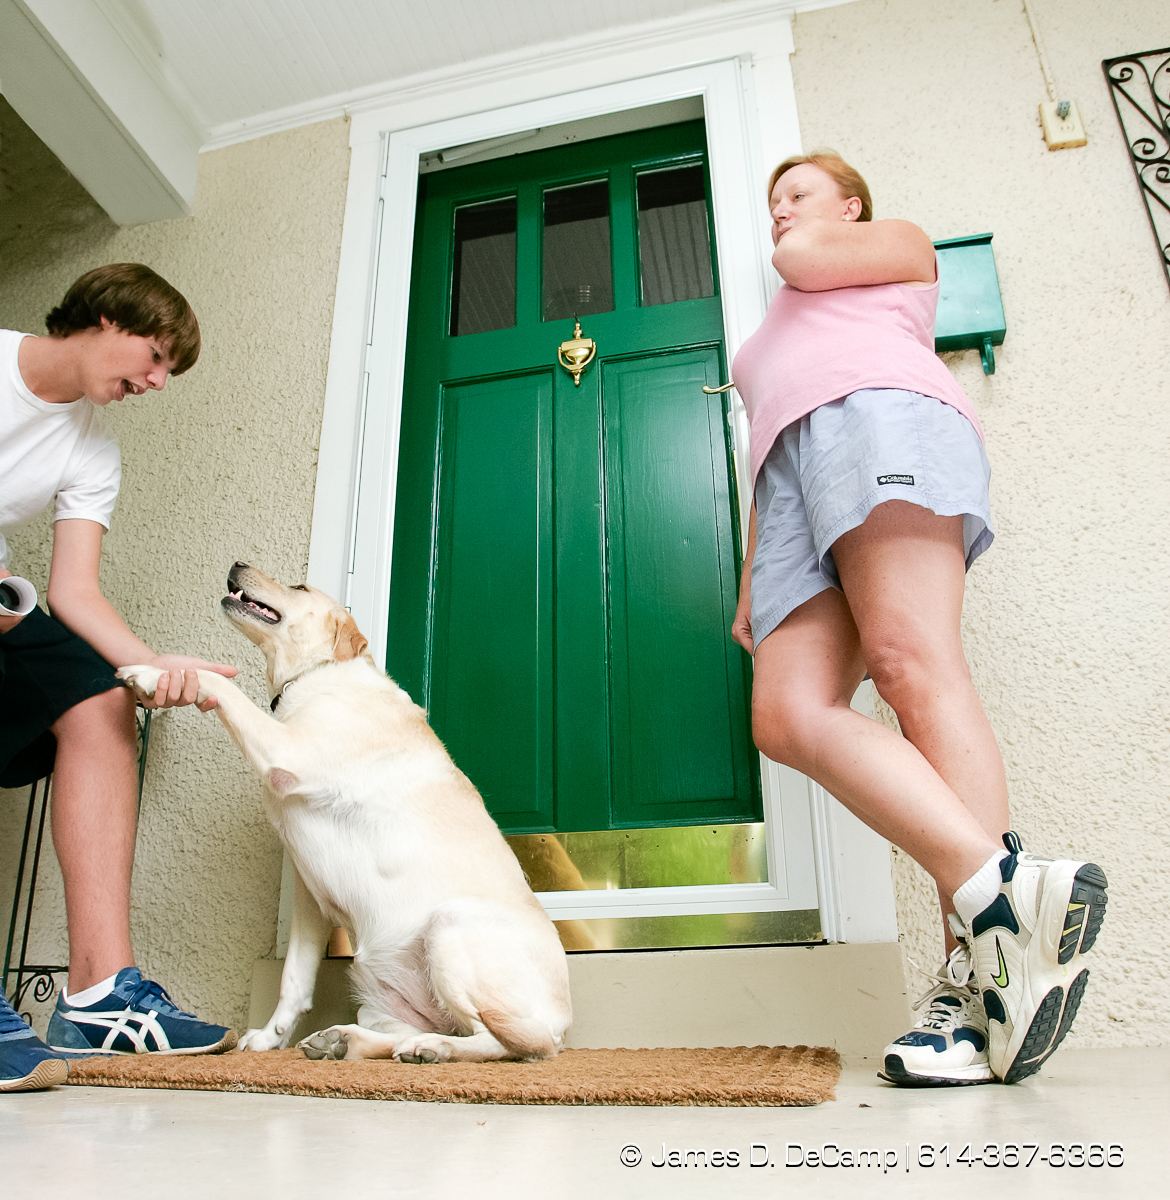 Bush supporters Shannon Gorman, right, talks with us as her son Patrick, 14, plays with their Lab Lucy ion the front porch of their house along South Gore Avenue photographed Wednesday September 29, 2004 on day 6 of the 2004 'Real People Tour' of middle America. (© James D. DeCamp | http://www.JamesDeCamp.com | 614-367-6366) [Photographed with Canon 1D MkII cameras in RAW mode with L series lenses]